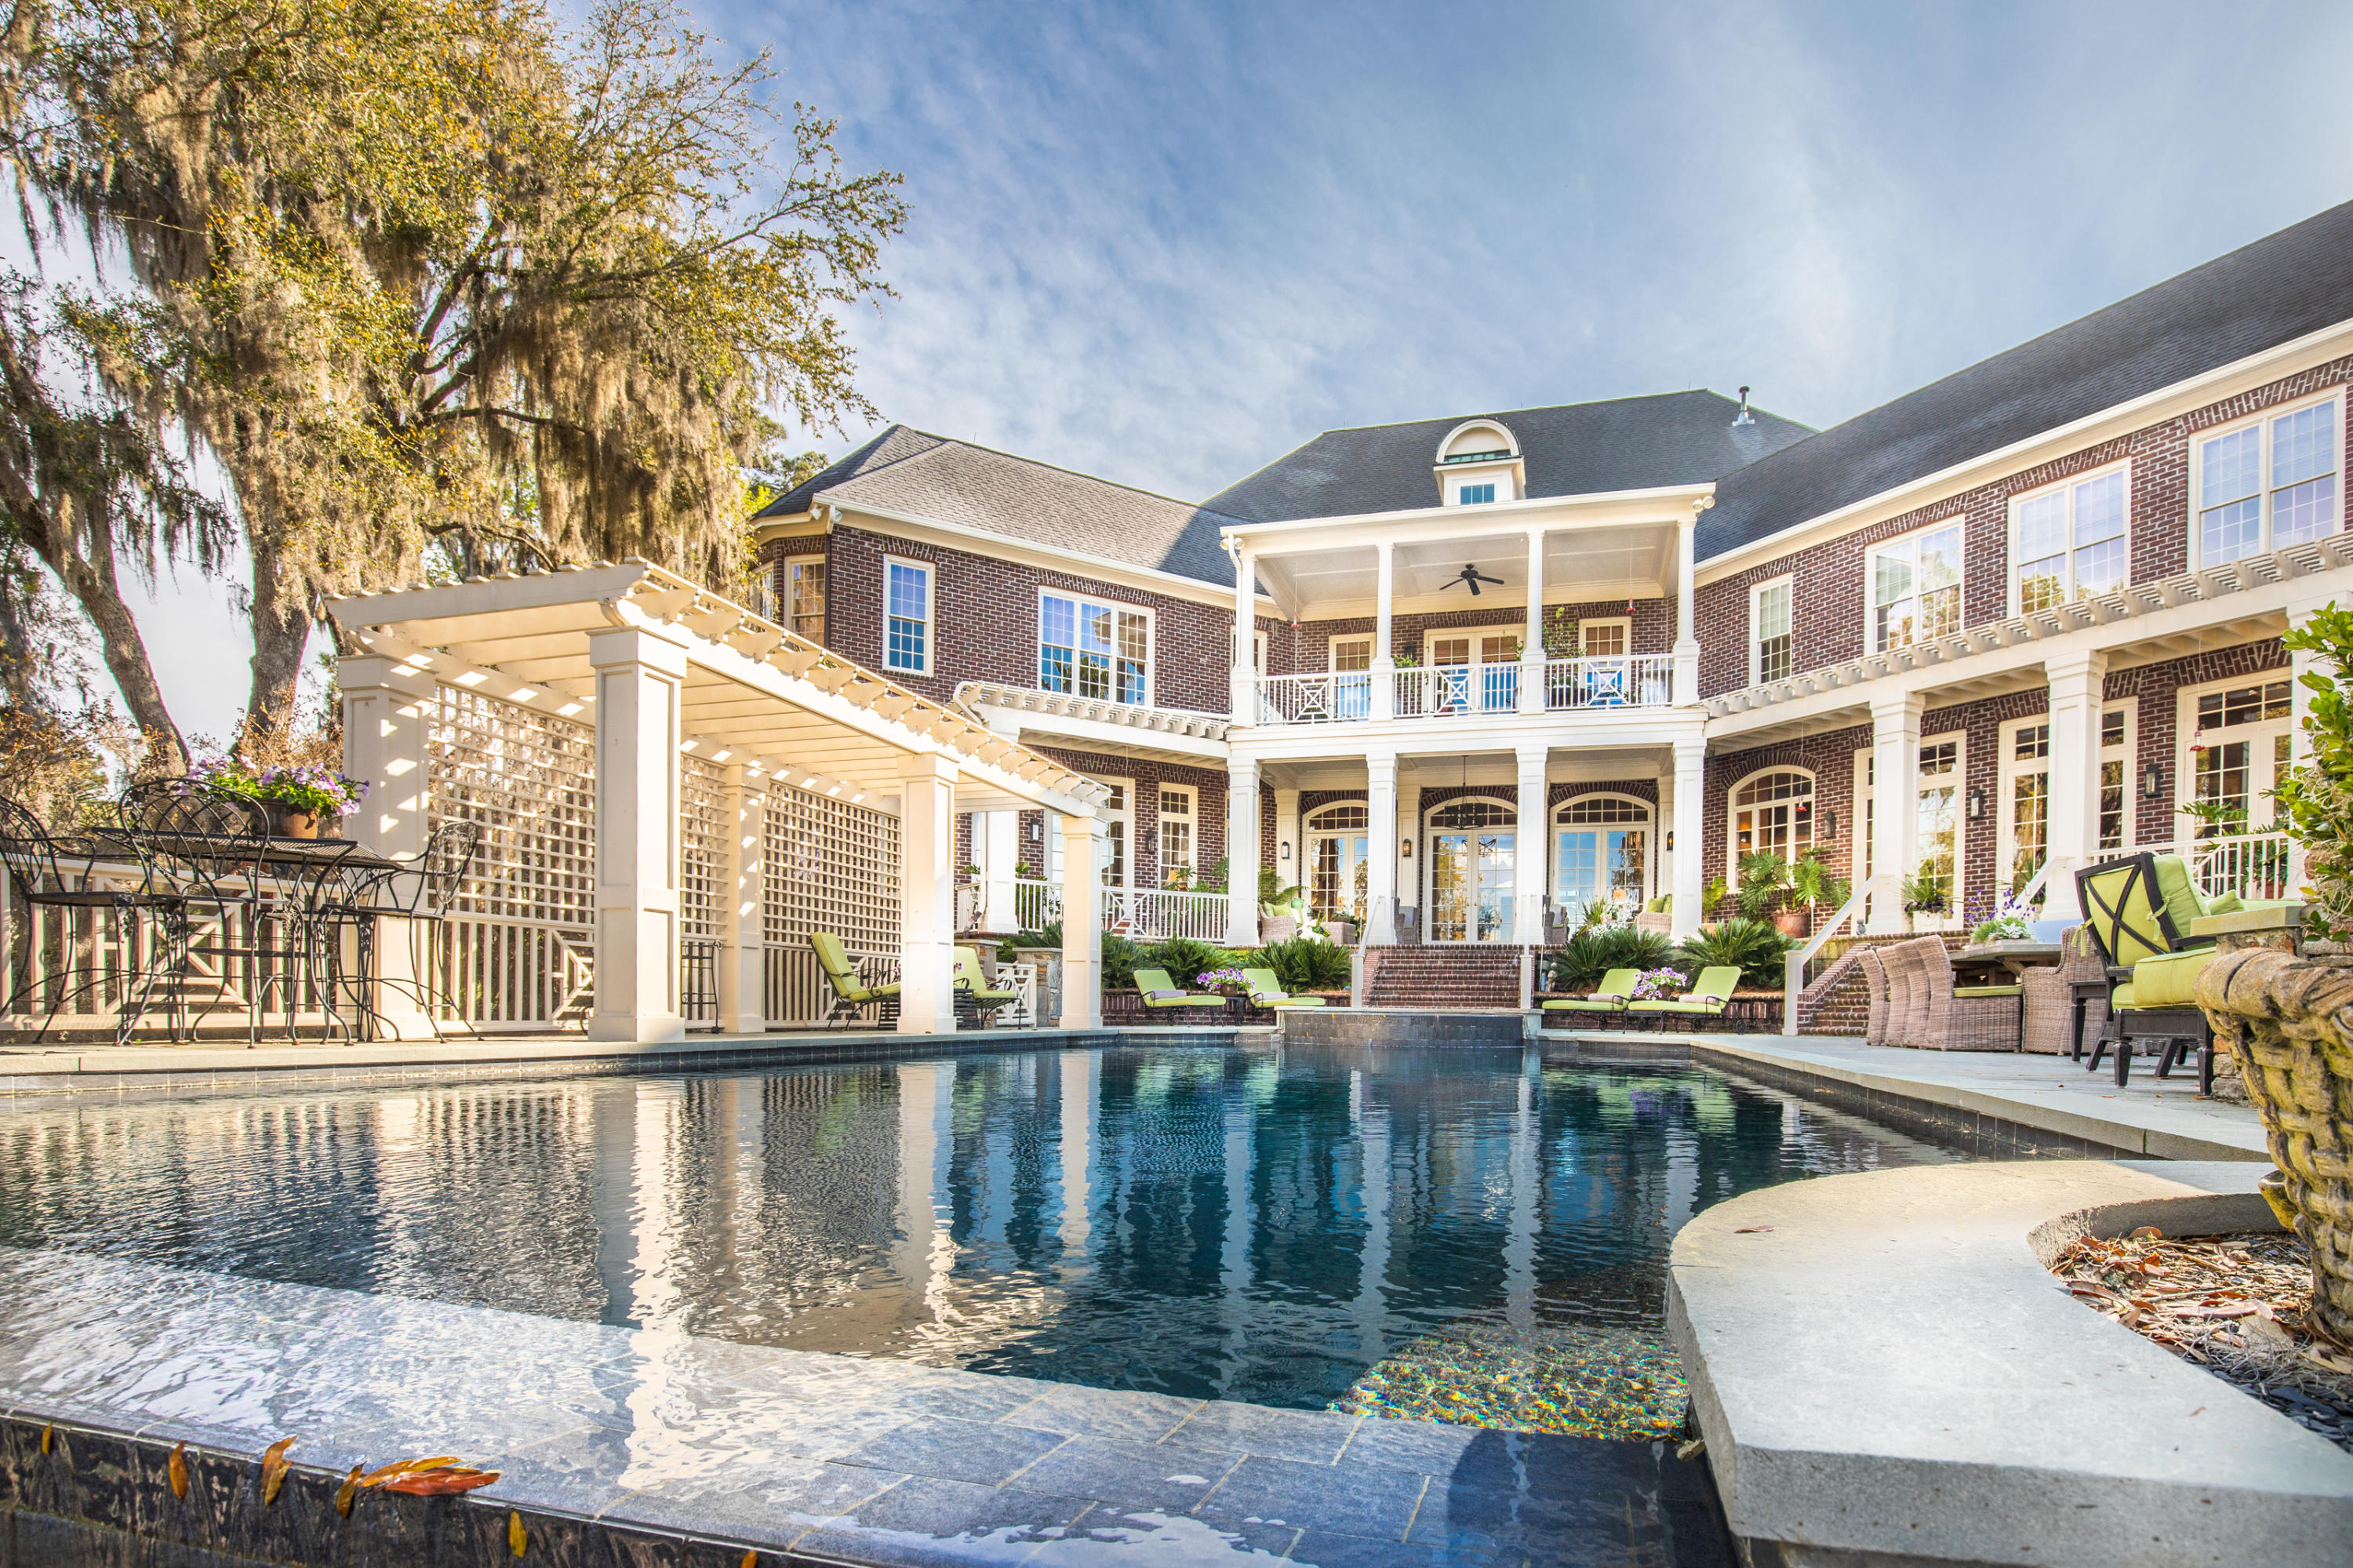 Ravens Bluff Homes For Sale - 5150 Chisolm, Johns Island, SC - 47